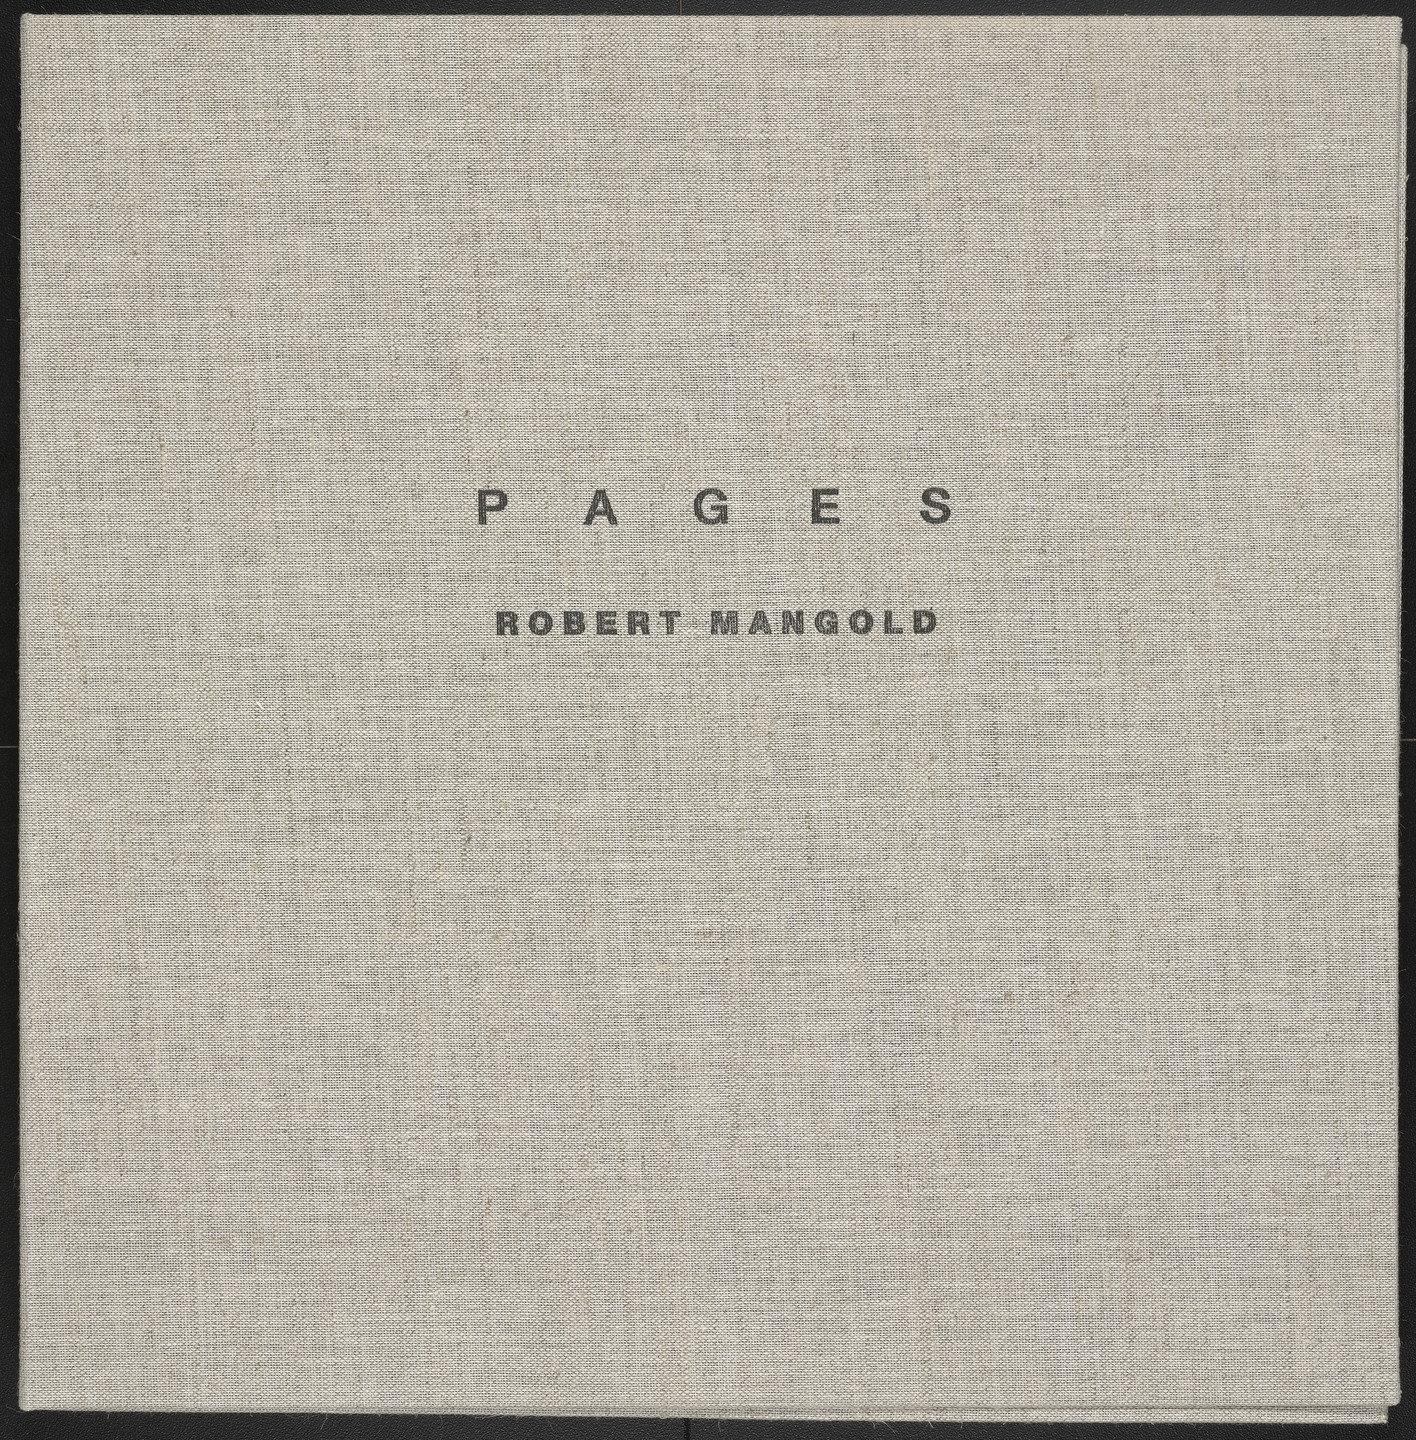 Robert Mangold. Pages. 1989